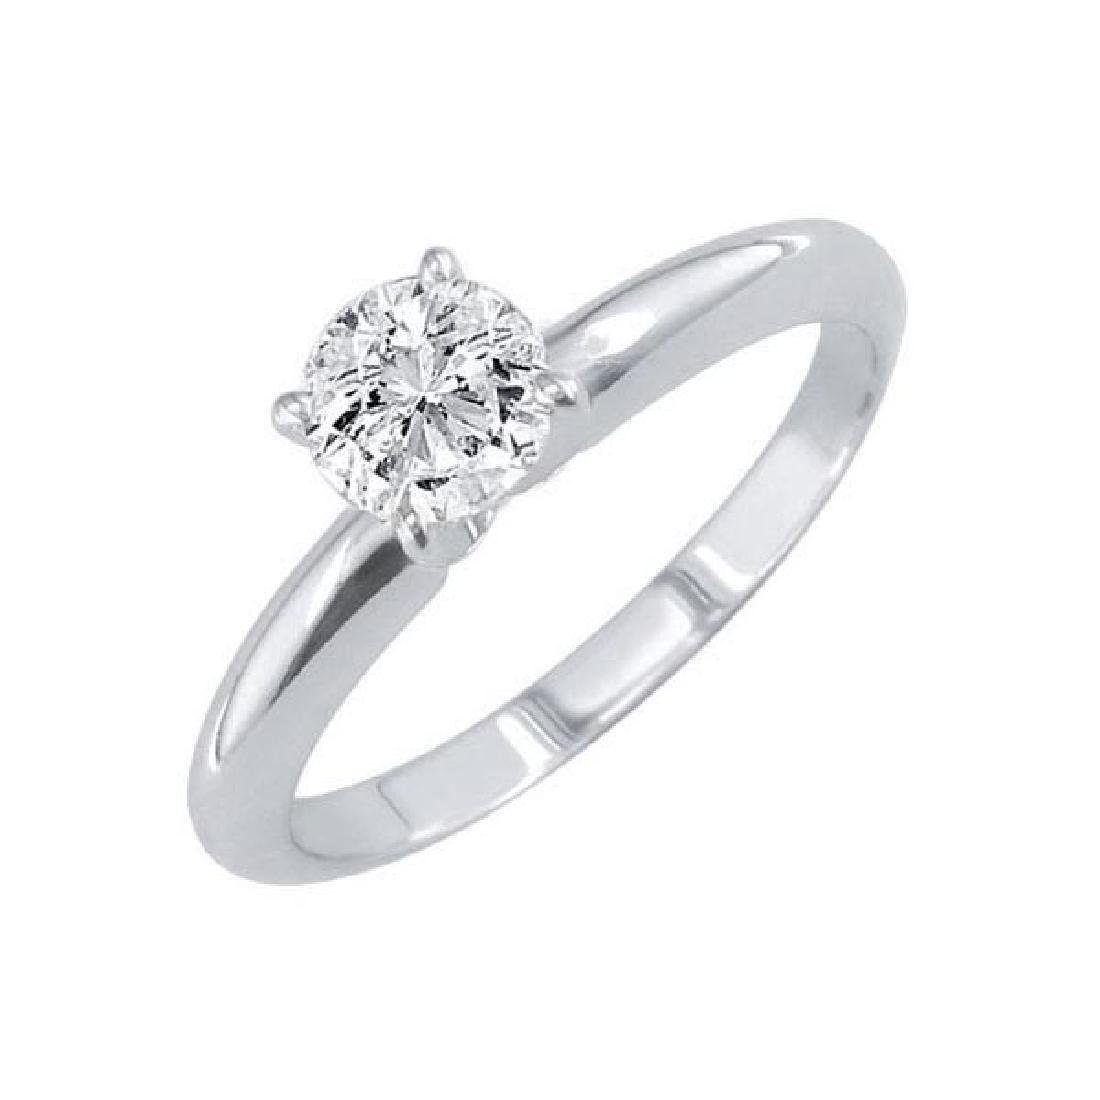 Certified 1.21 CTW Round Diamond Solitaire 14k Ring J/S